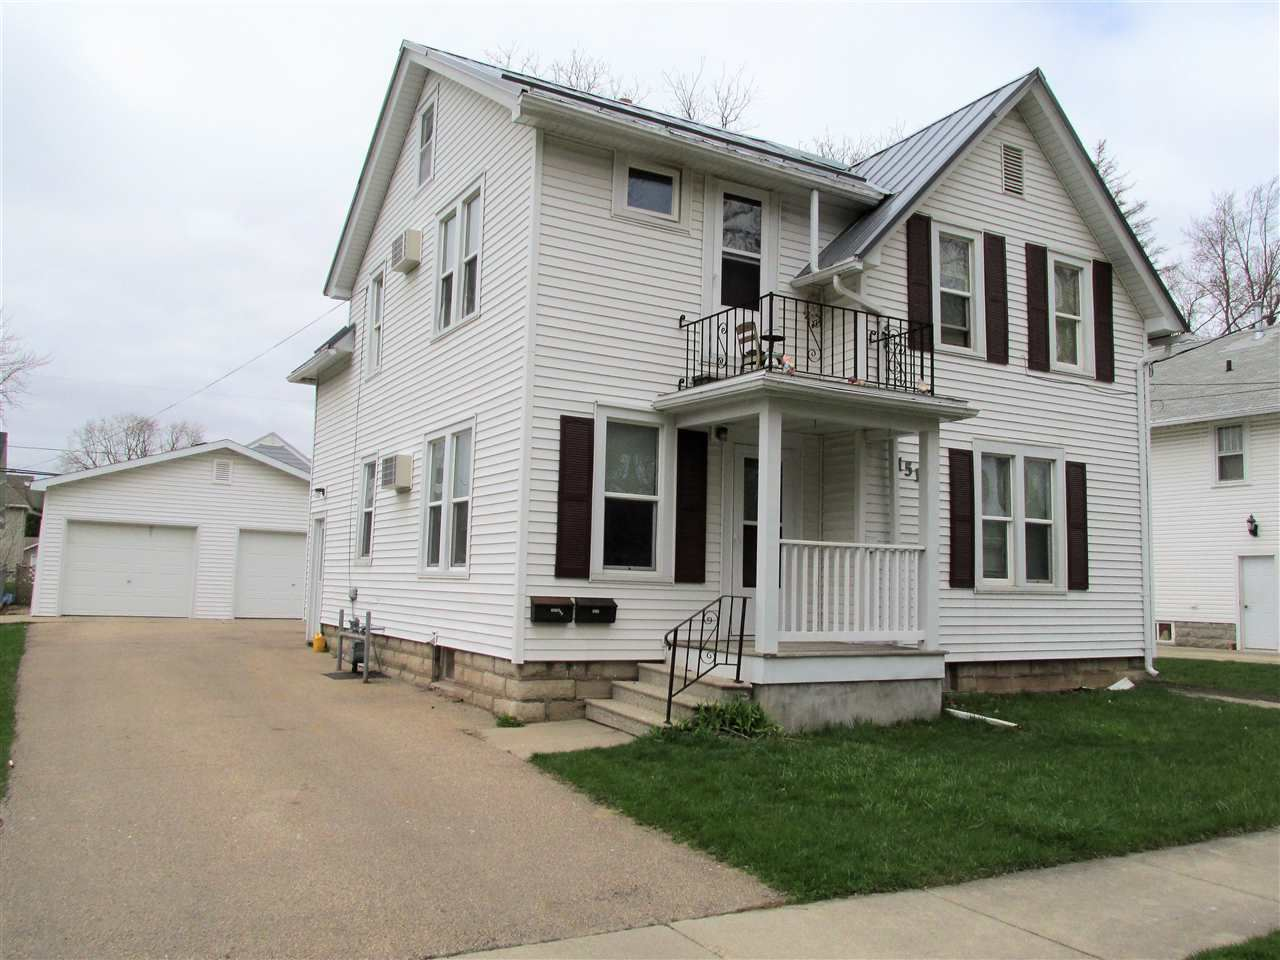 1517 N SUPERIOR Street, Appleton, WI 54911 - MLS#: 50238399